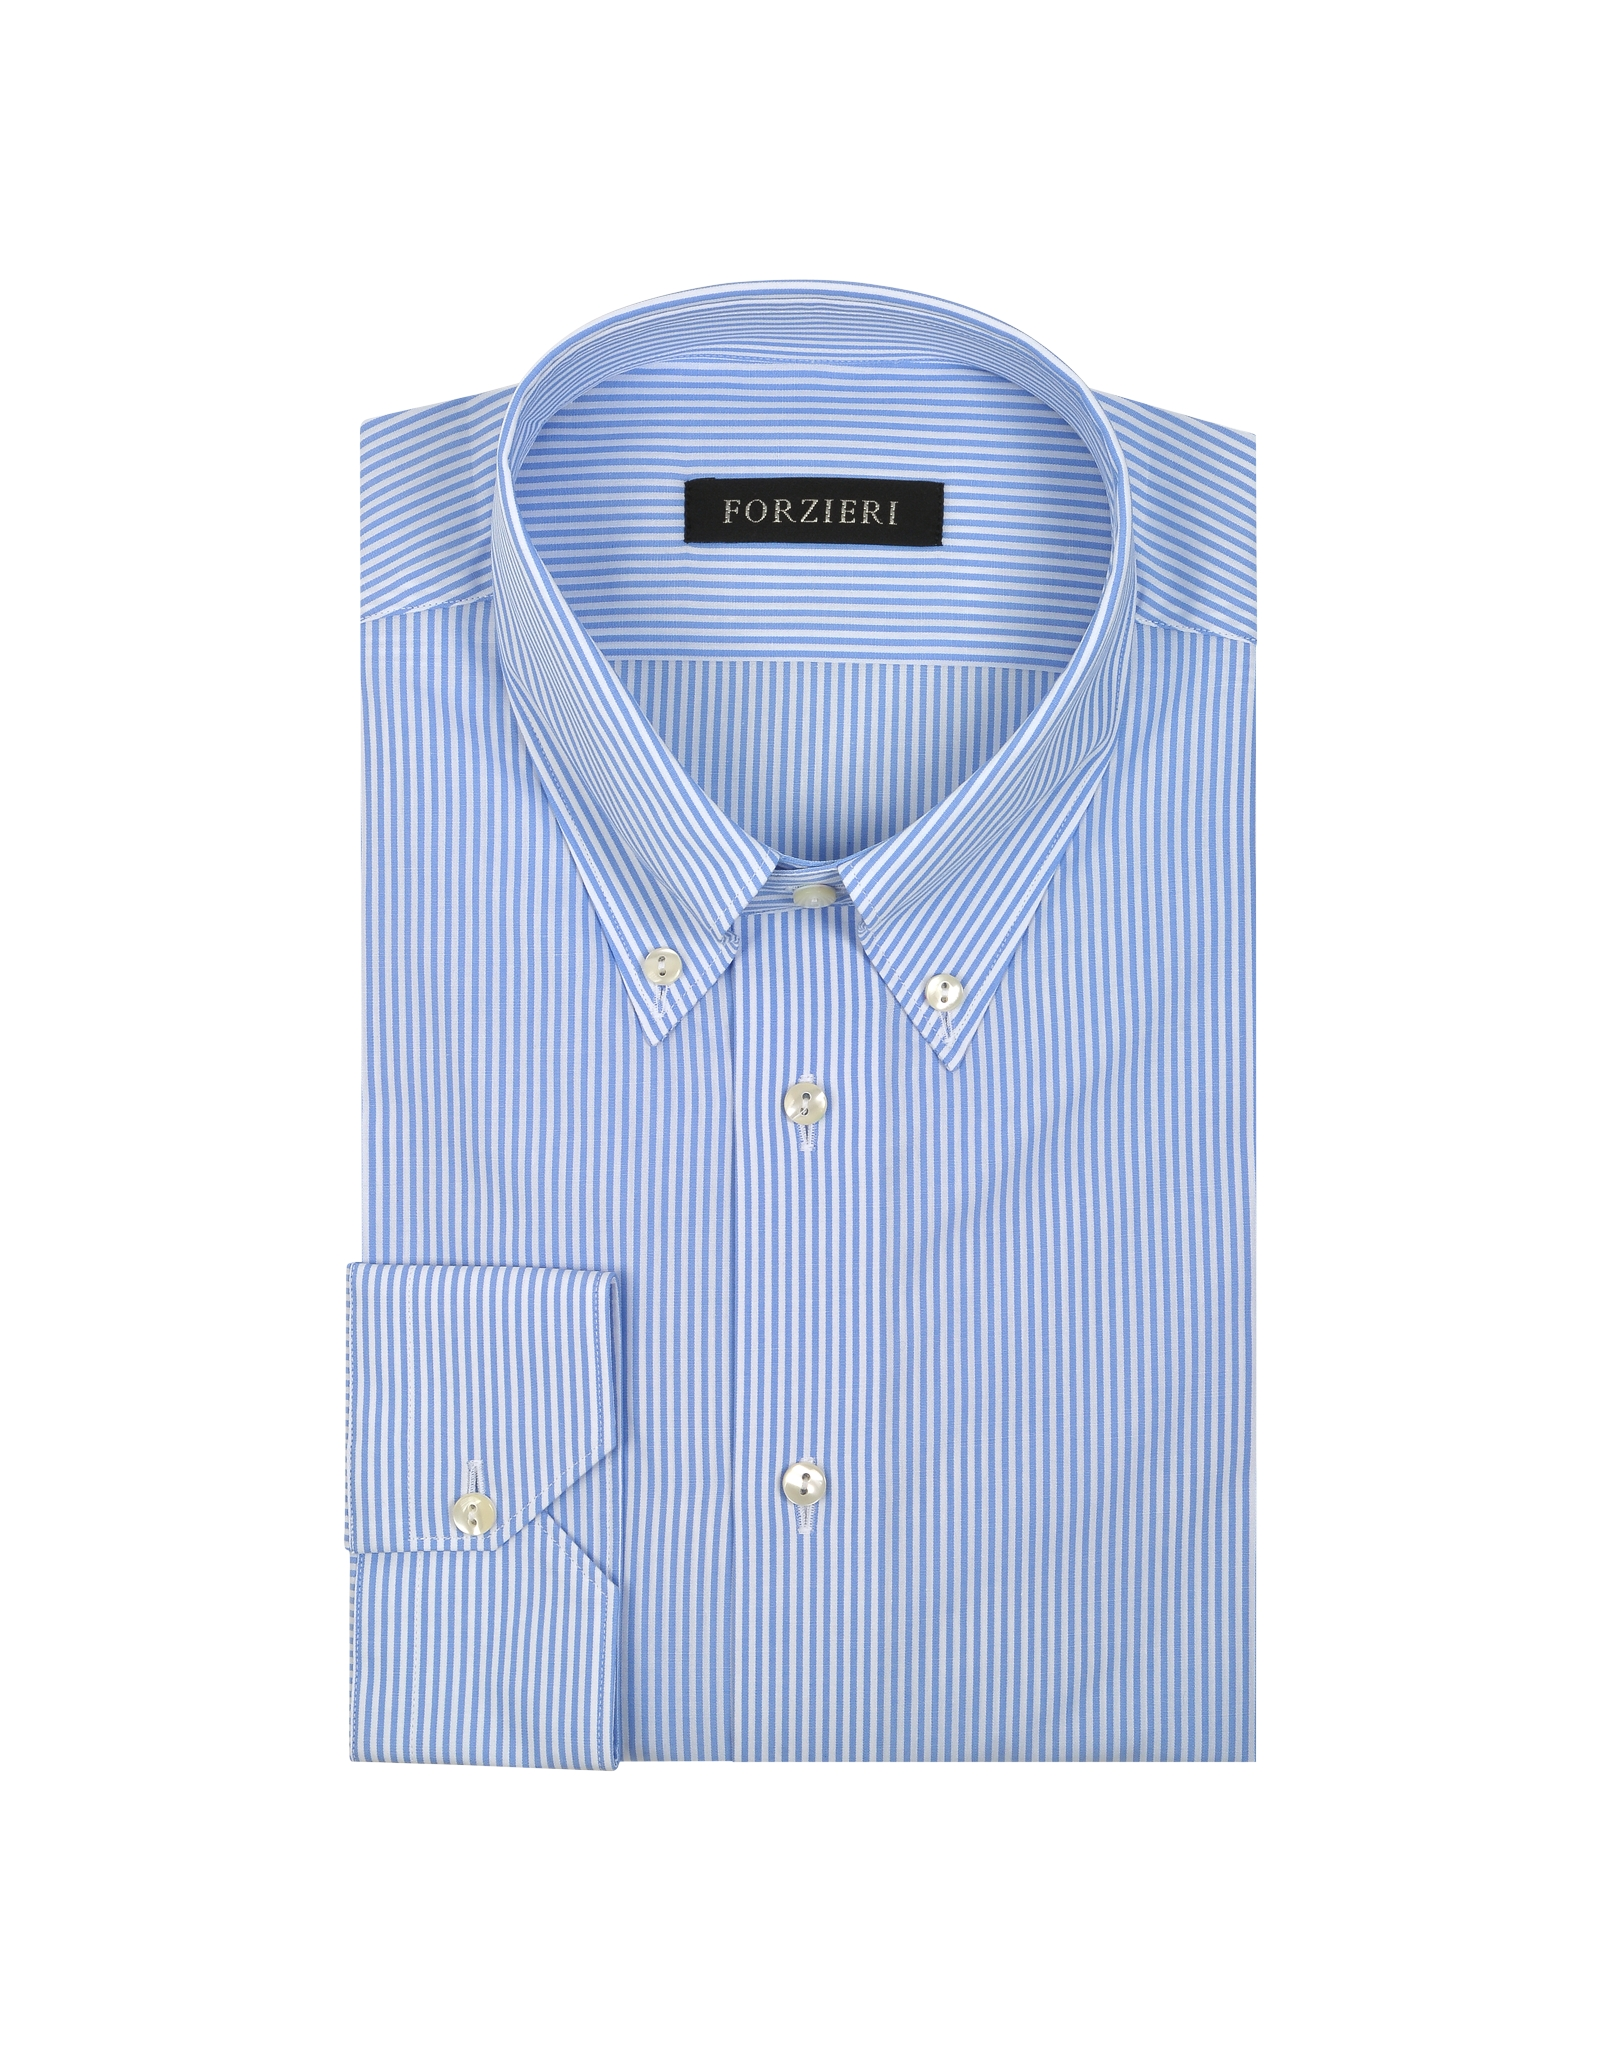 Lyst forzieri light blue striped non iron cotton dress for White non iron dress shirts